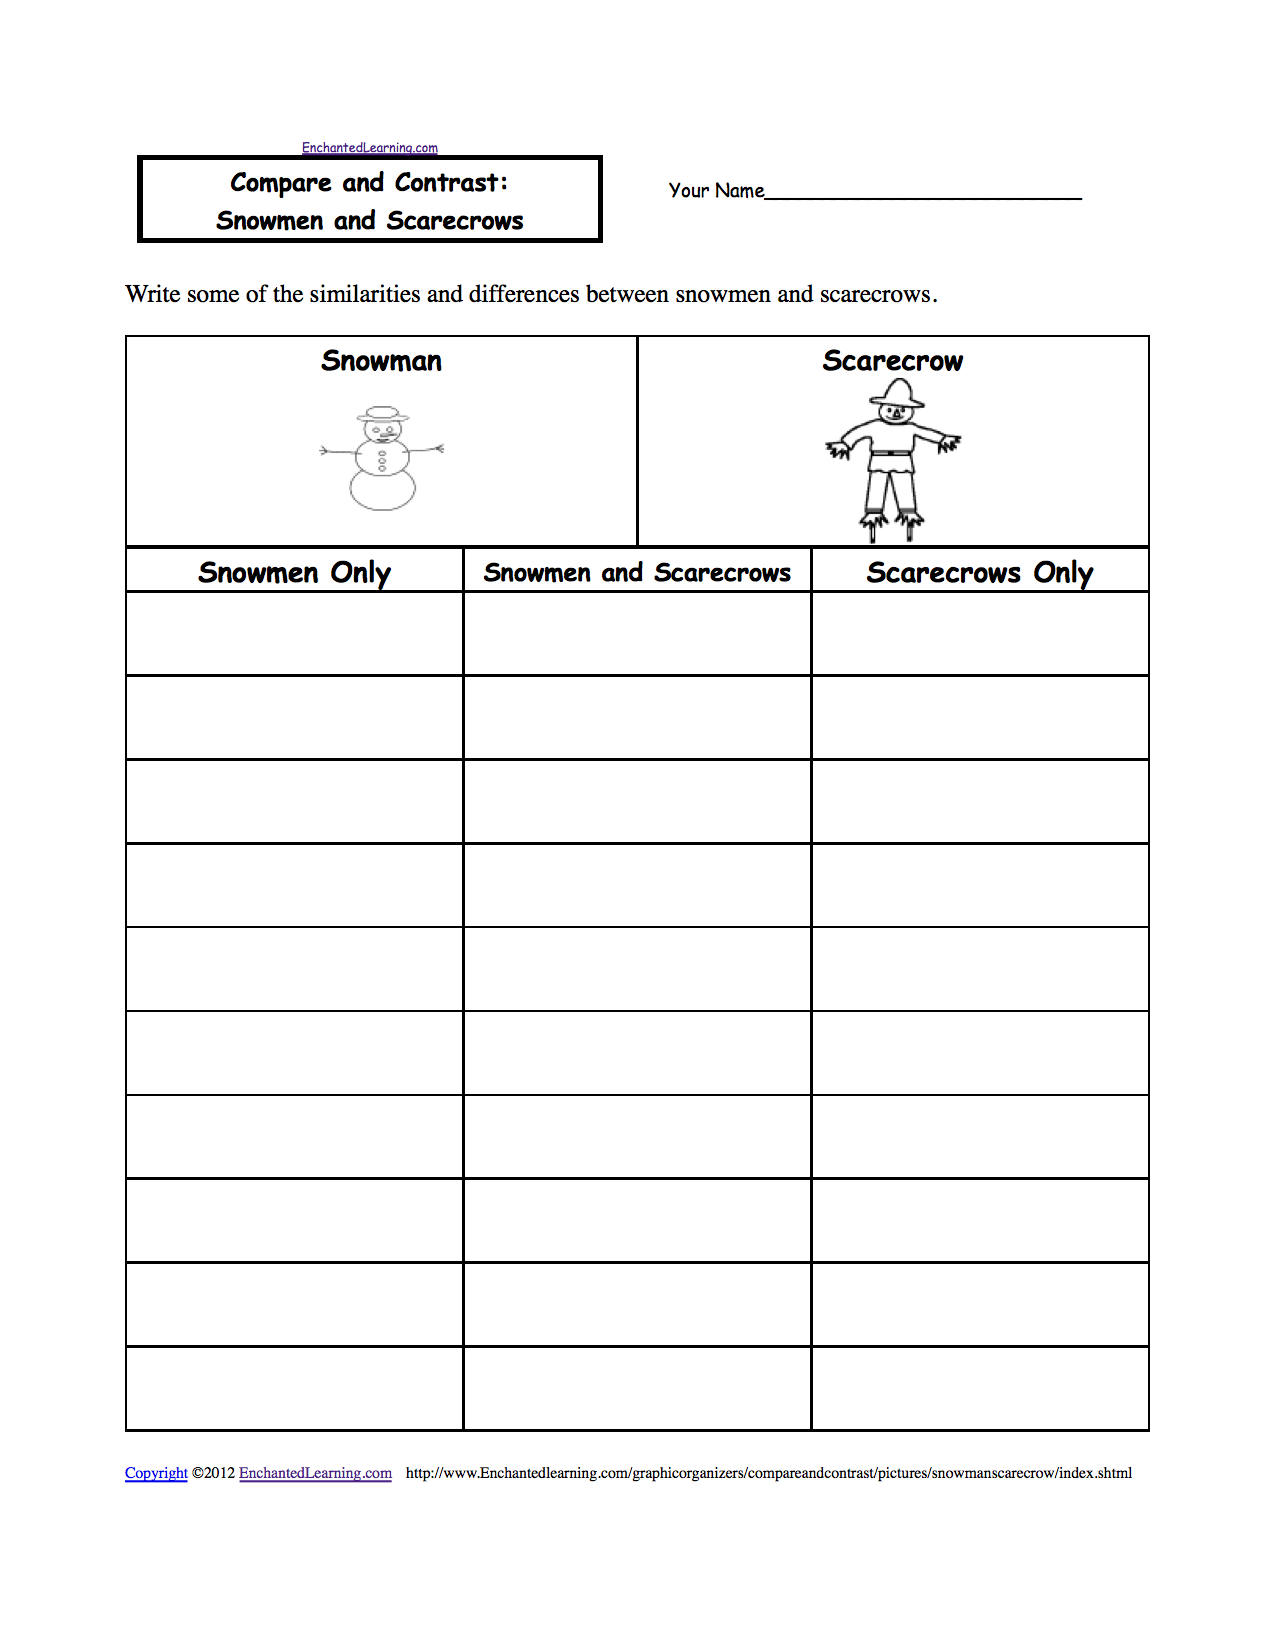 Worksheets Compare And Contrast Worksheets 4th Grade compare and contrast worksheets to print enchantedlearning com snowmen scarecrows